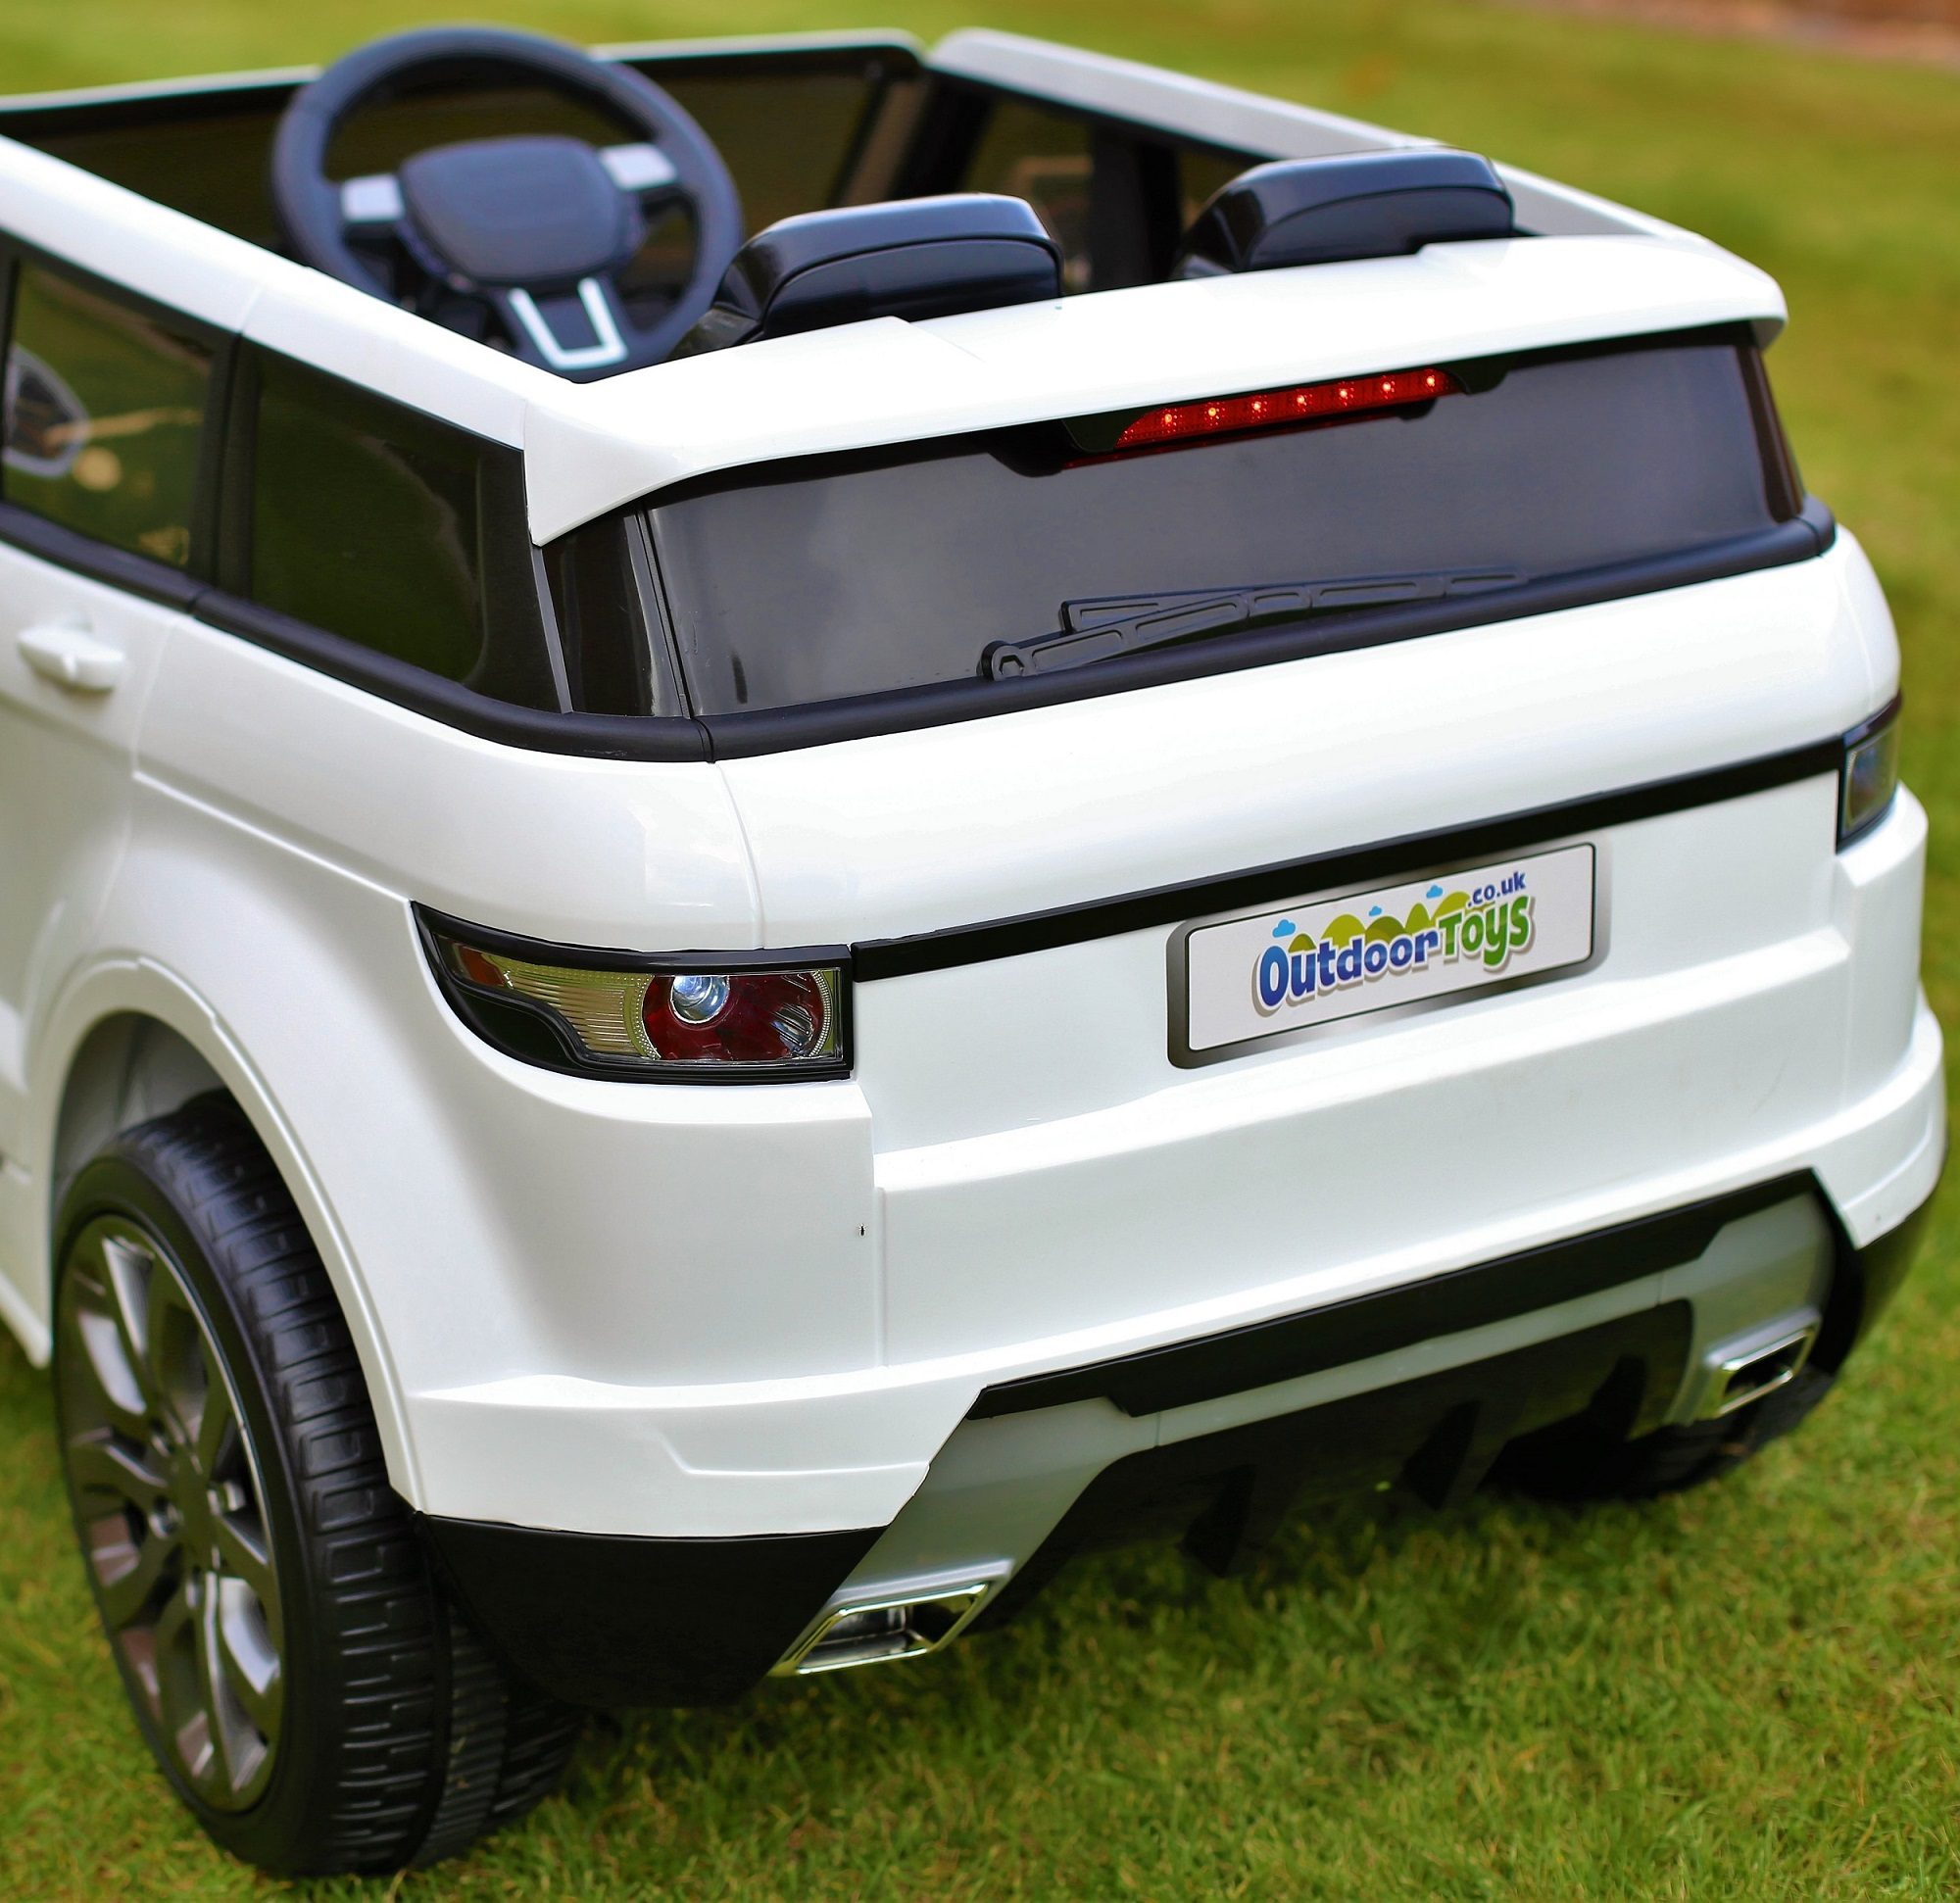 Maxi Range Rover HSE Sport Style 12v Electric Battery Ride on Car